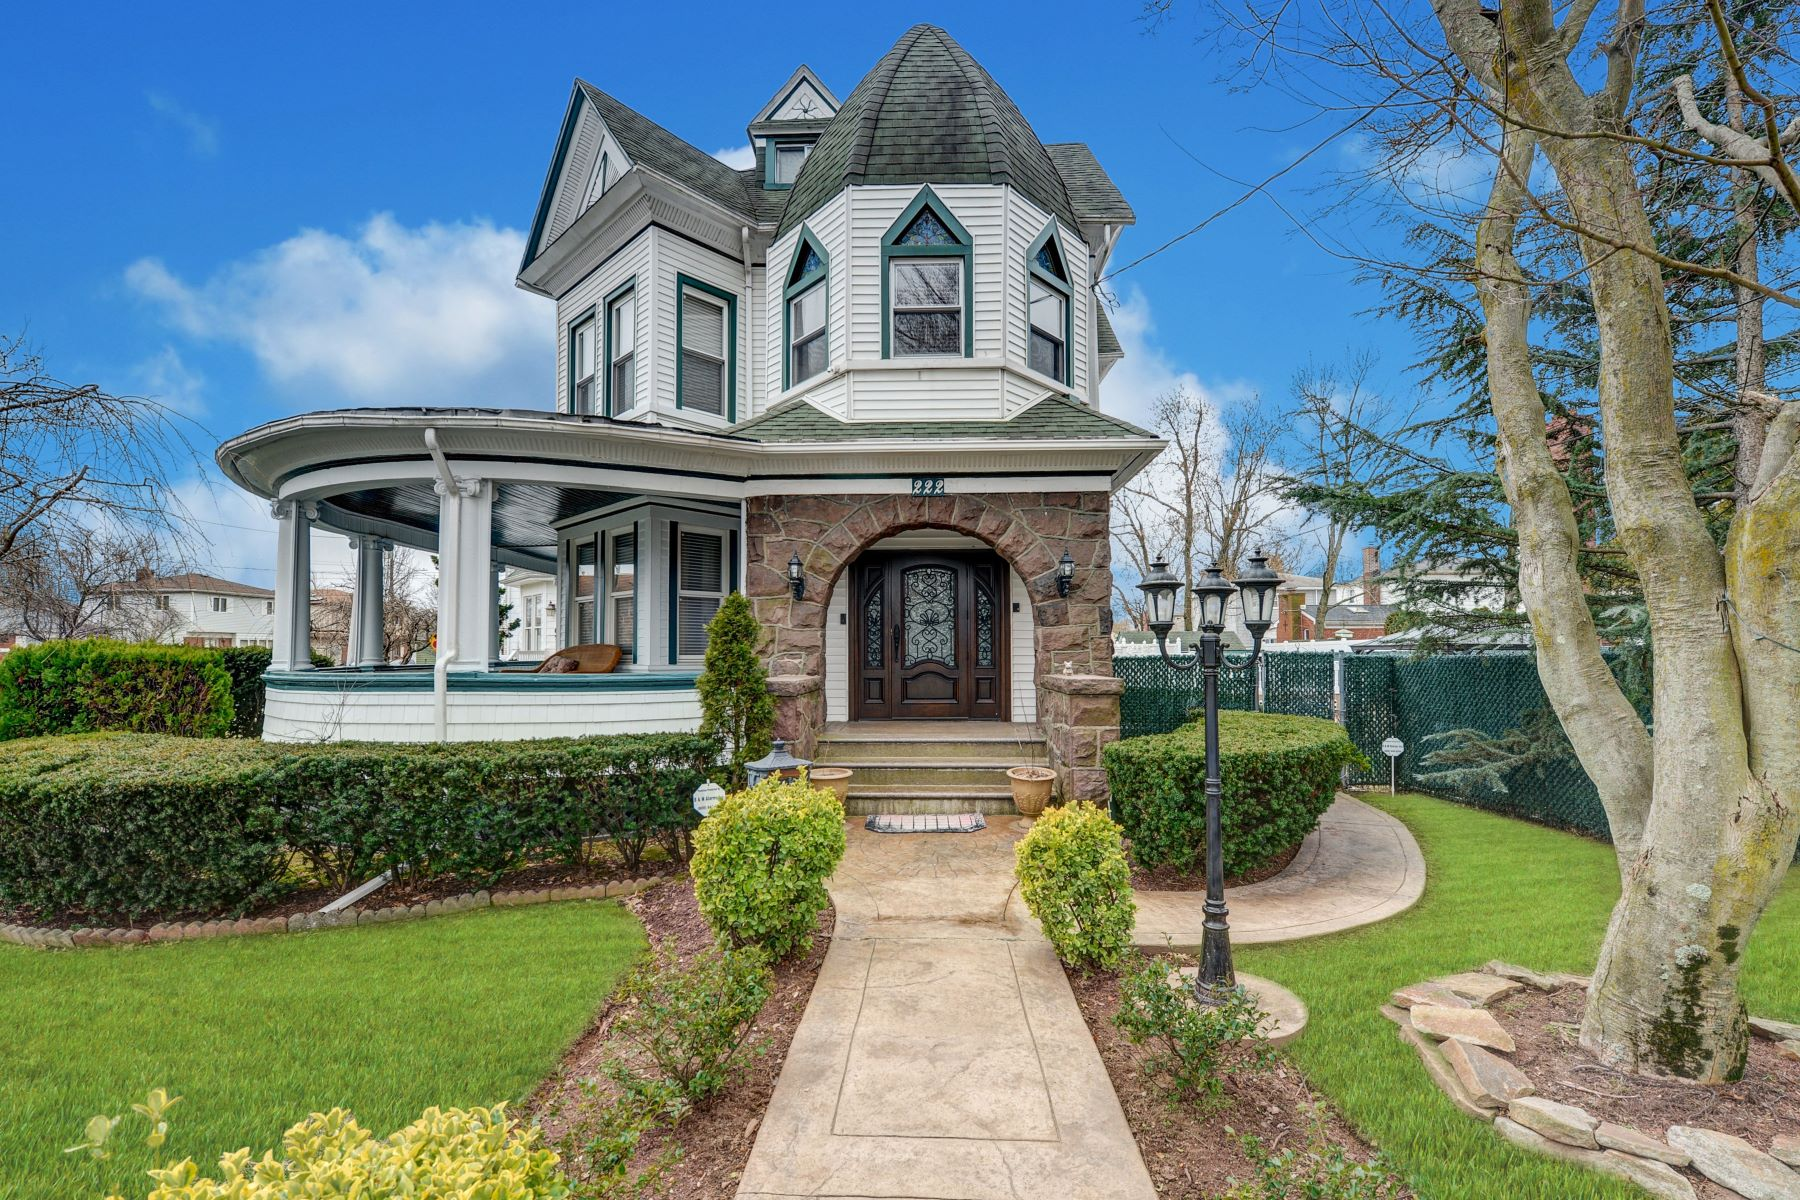 Single Family Homes for Sale at Stunning Oakwood Victorian 222 Guyon Avenue Staten Island, New York 10306 United States